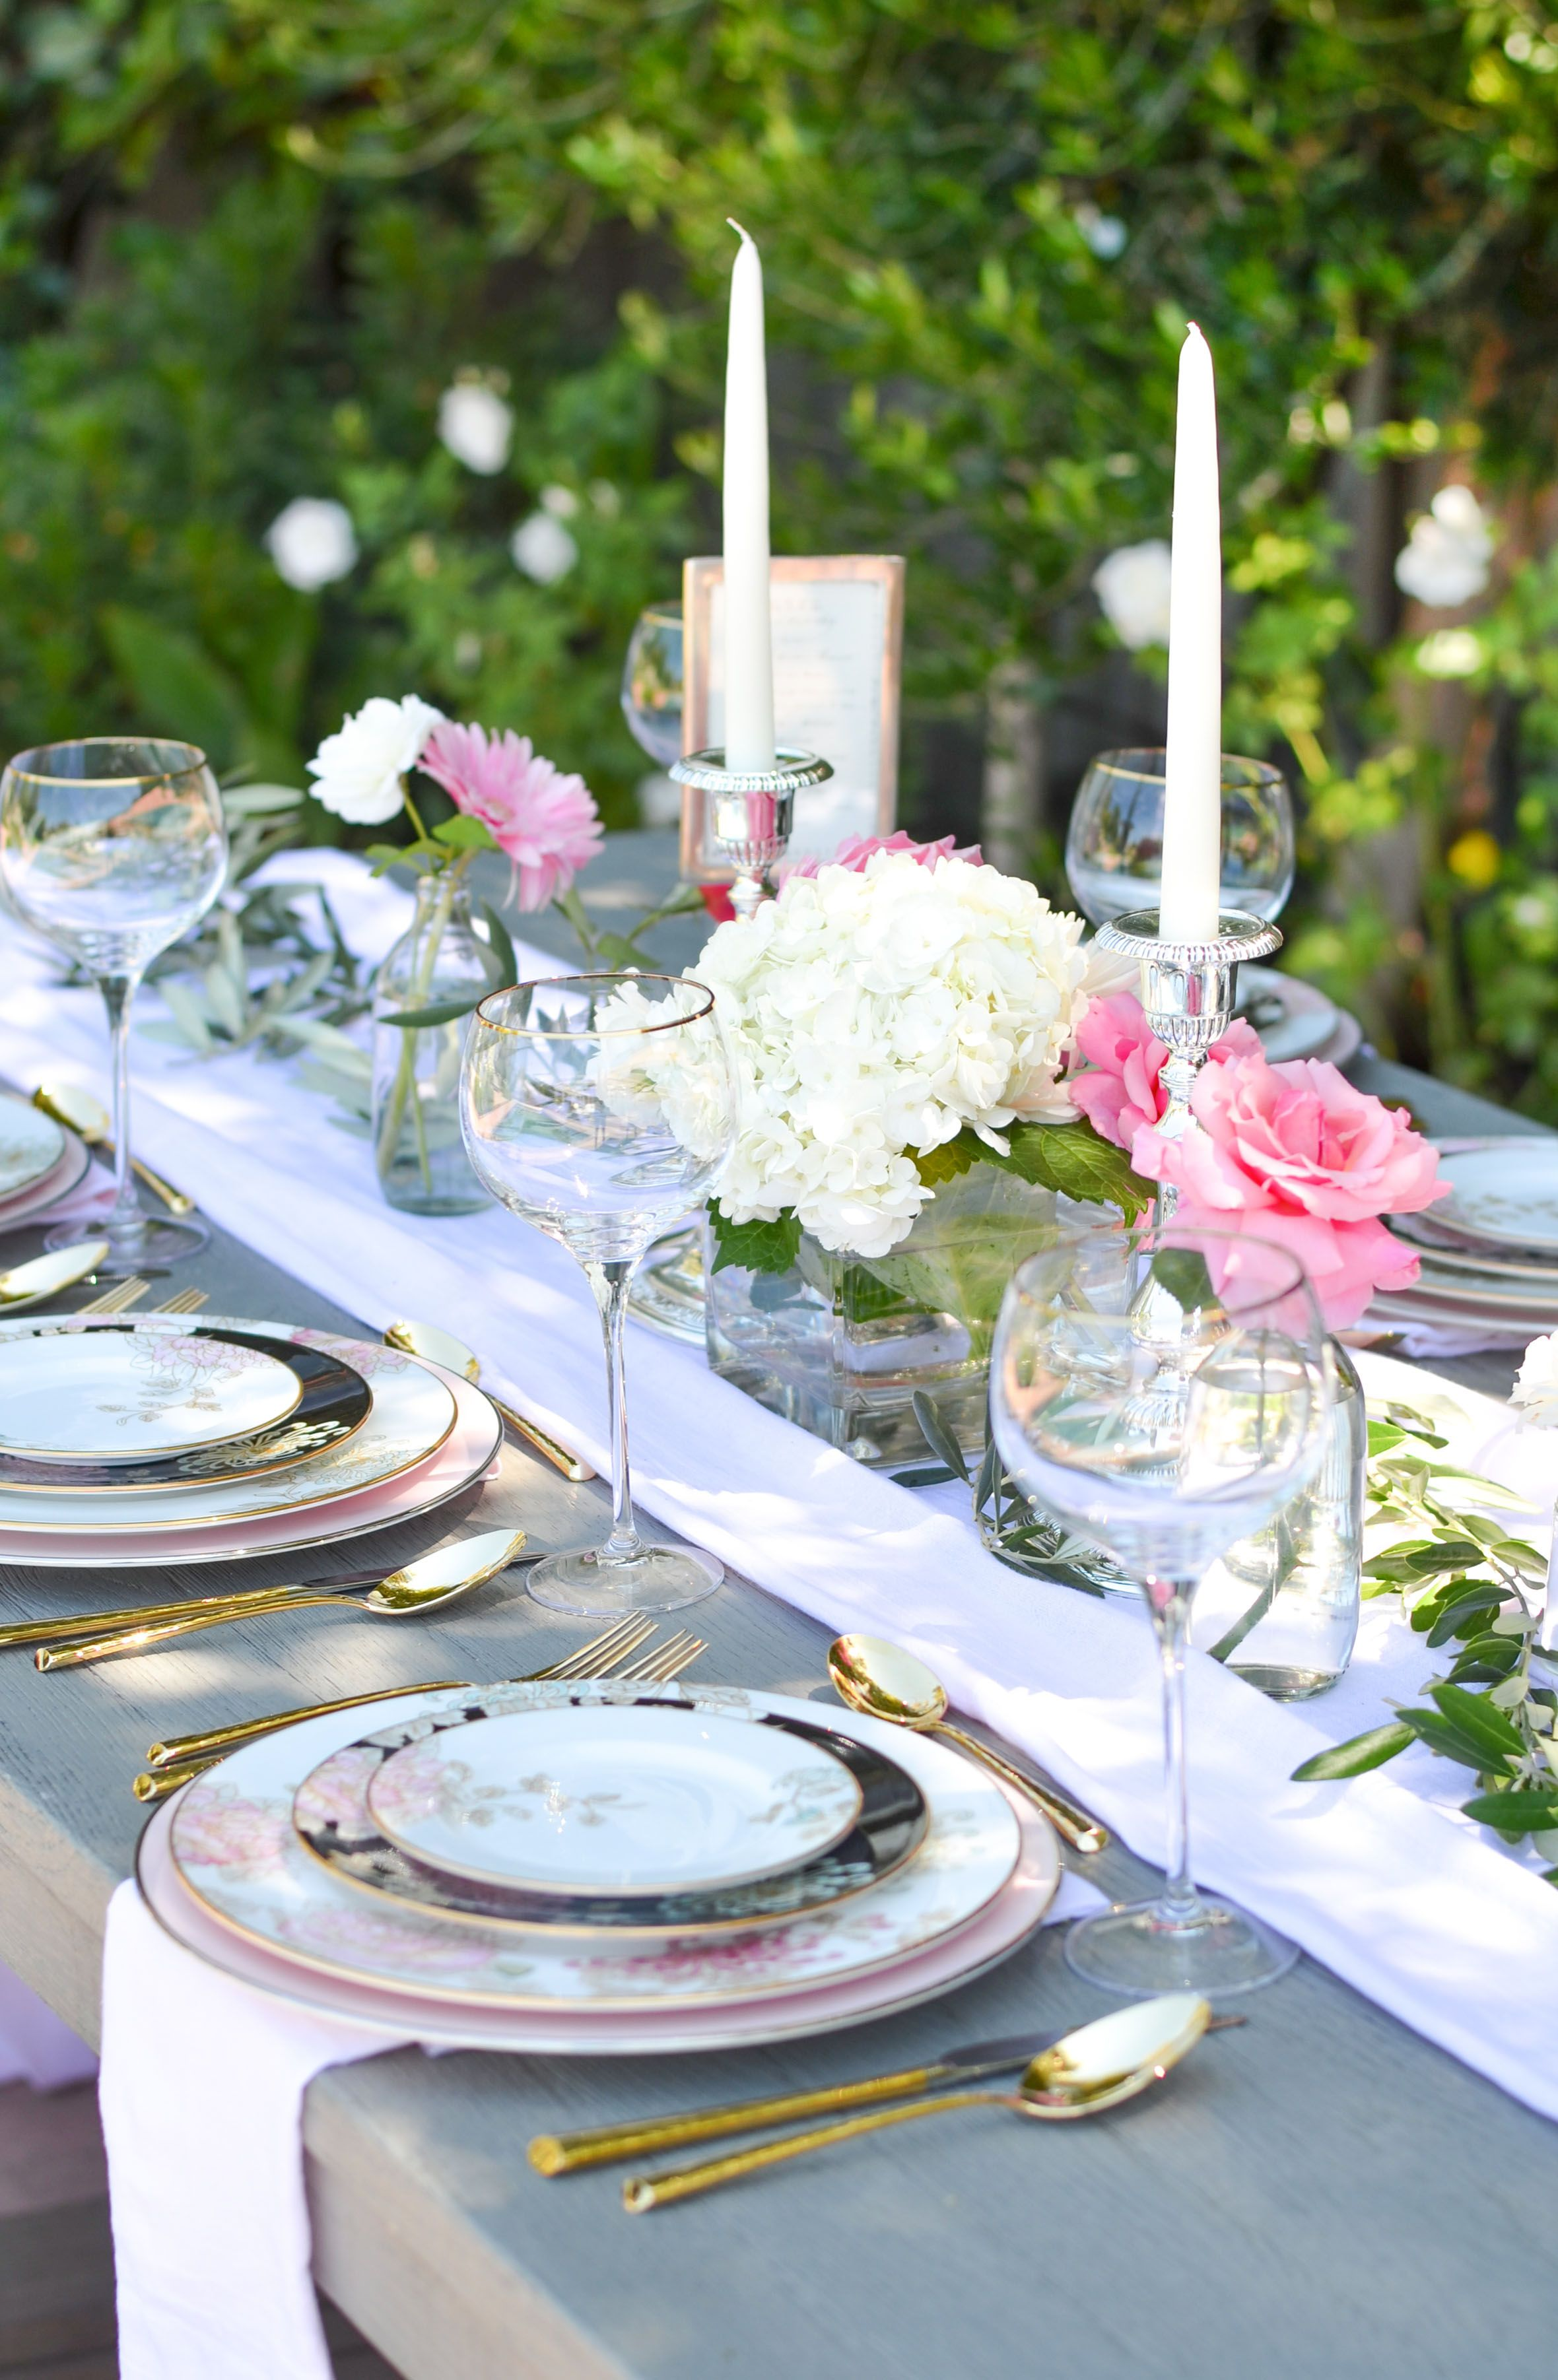 How to style Marchesa by Lenox Painted Camellia Dinnerware and Imperial Caviar flatware pink black white table setting gold flatware floral table setting ... & Bohemian Glam Table with Table+Dine and Marchesa u0027Painted Camellia ...